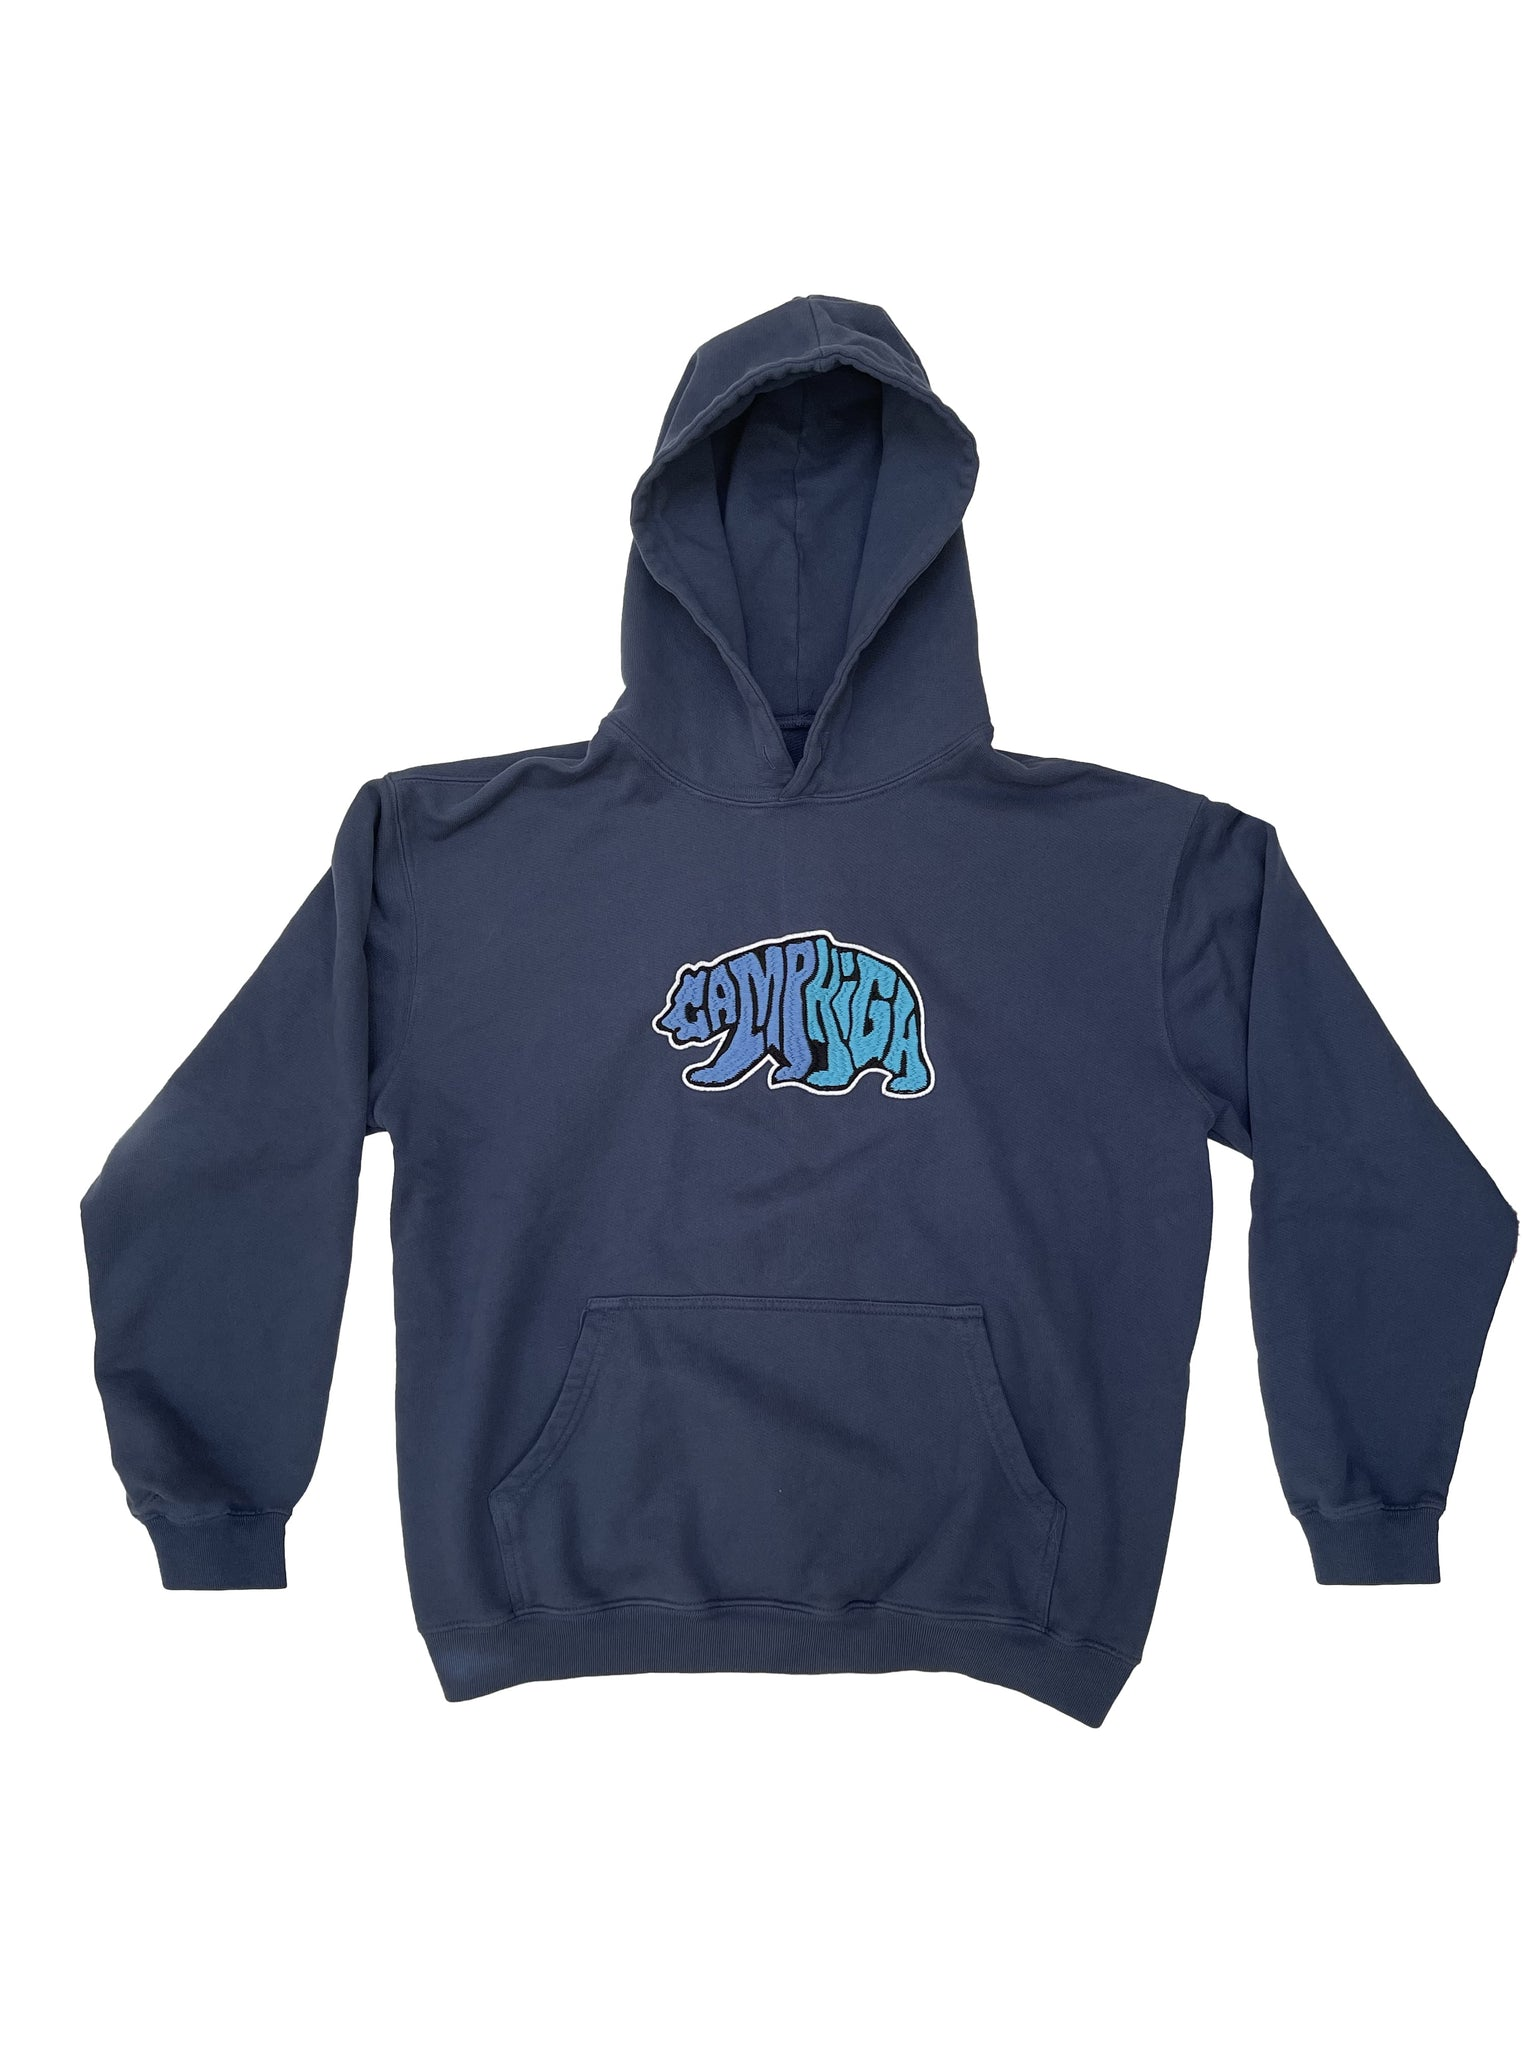 camphigh Small / NAVY Cali Bear Hoody